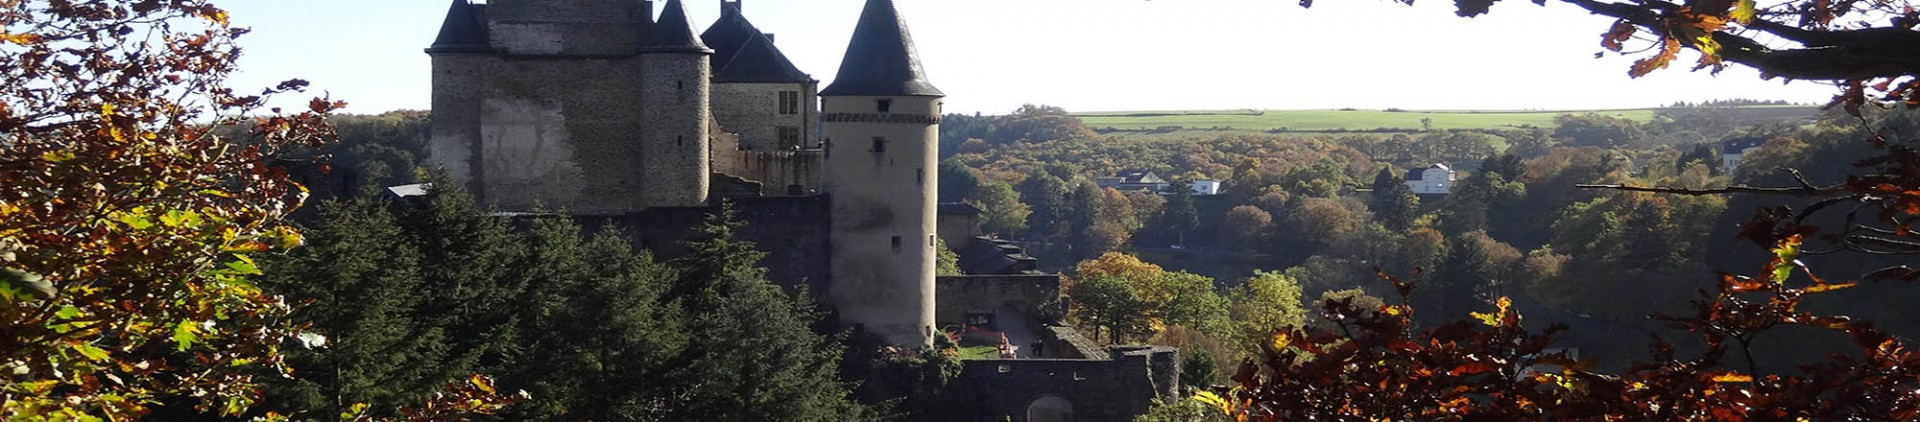 Luxemburg - Ardenne Incoming